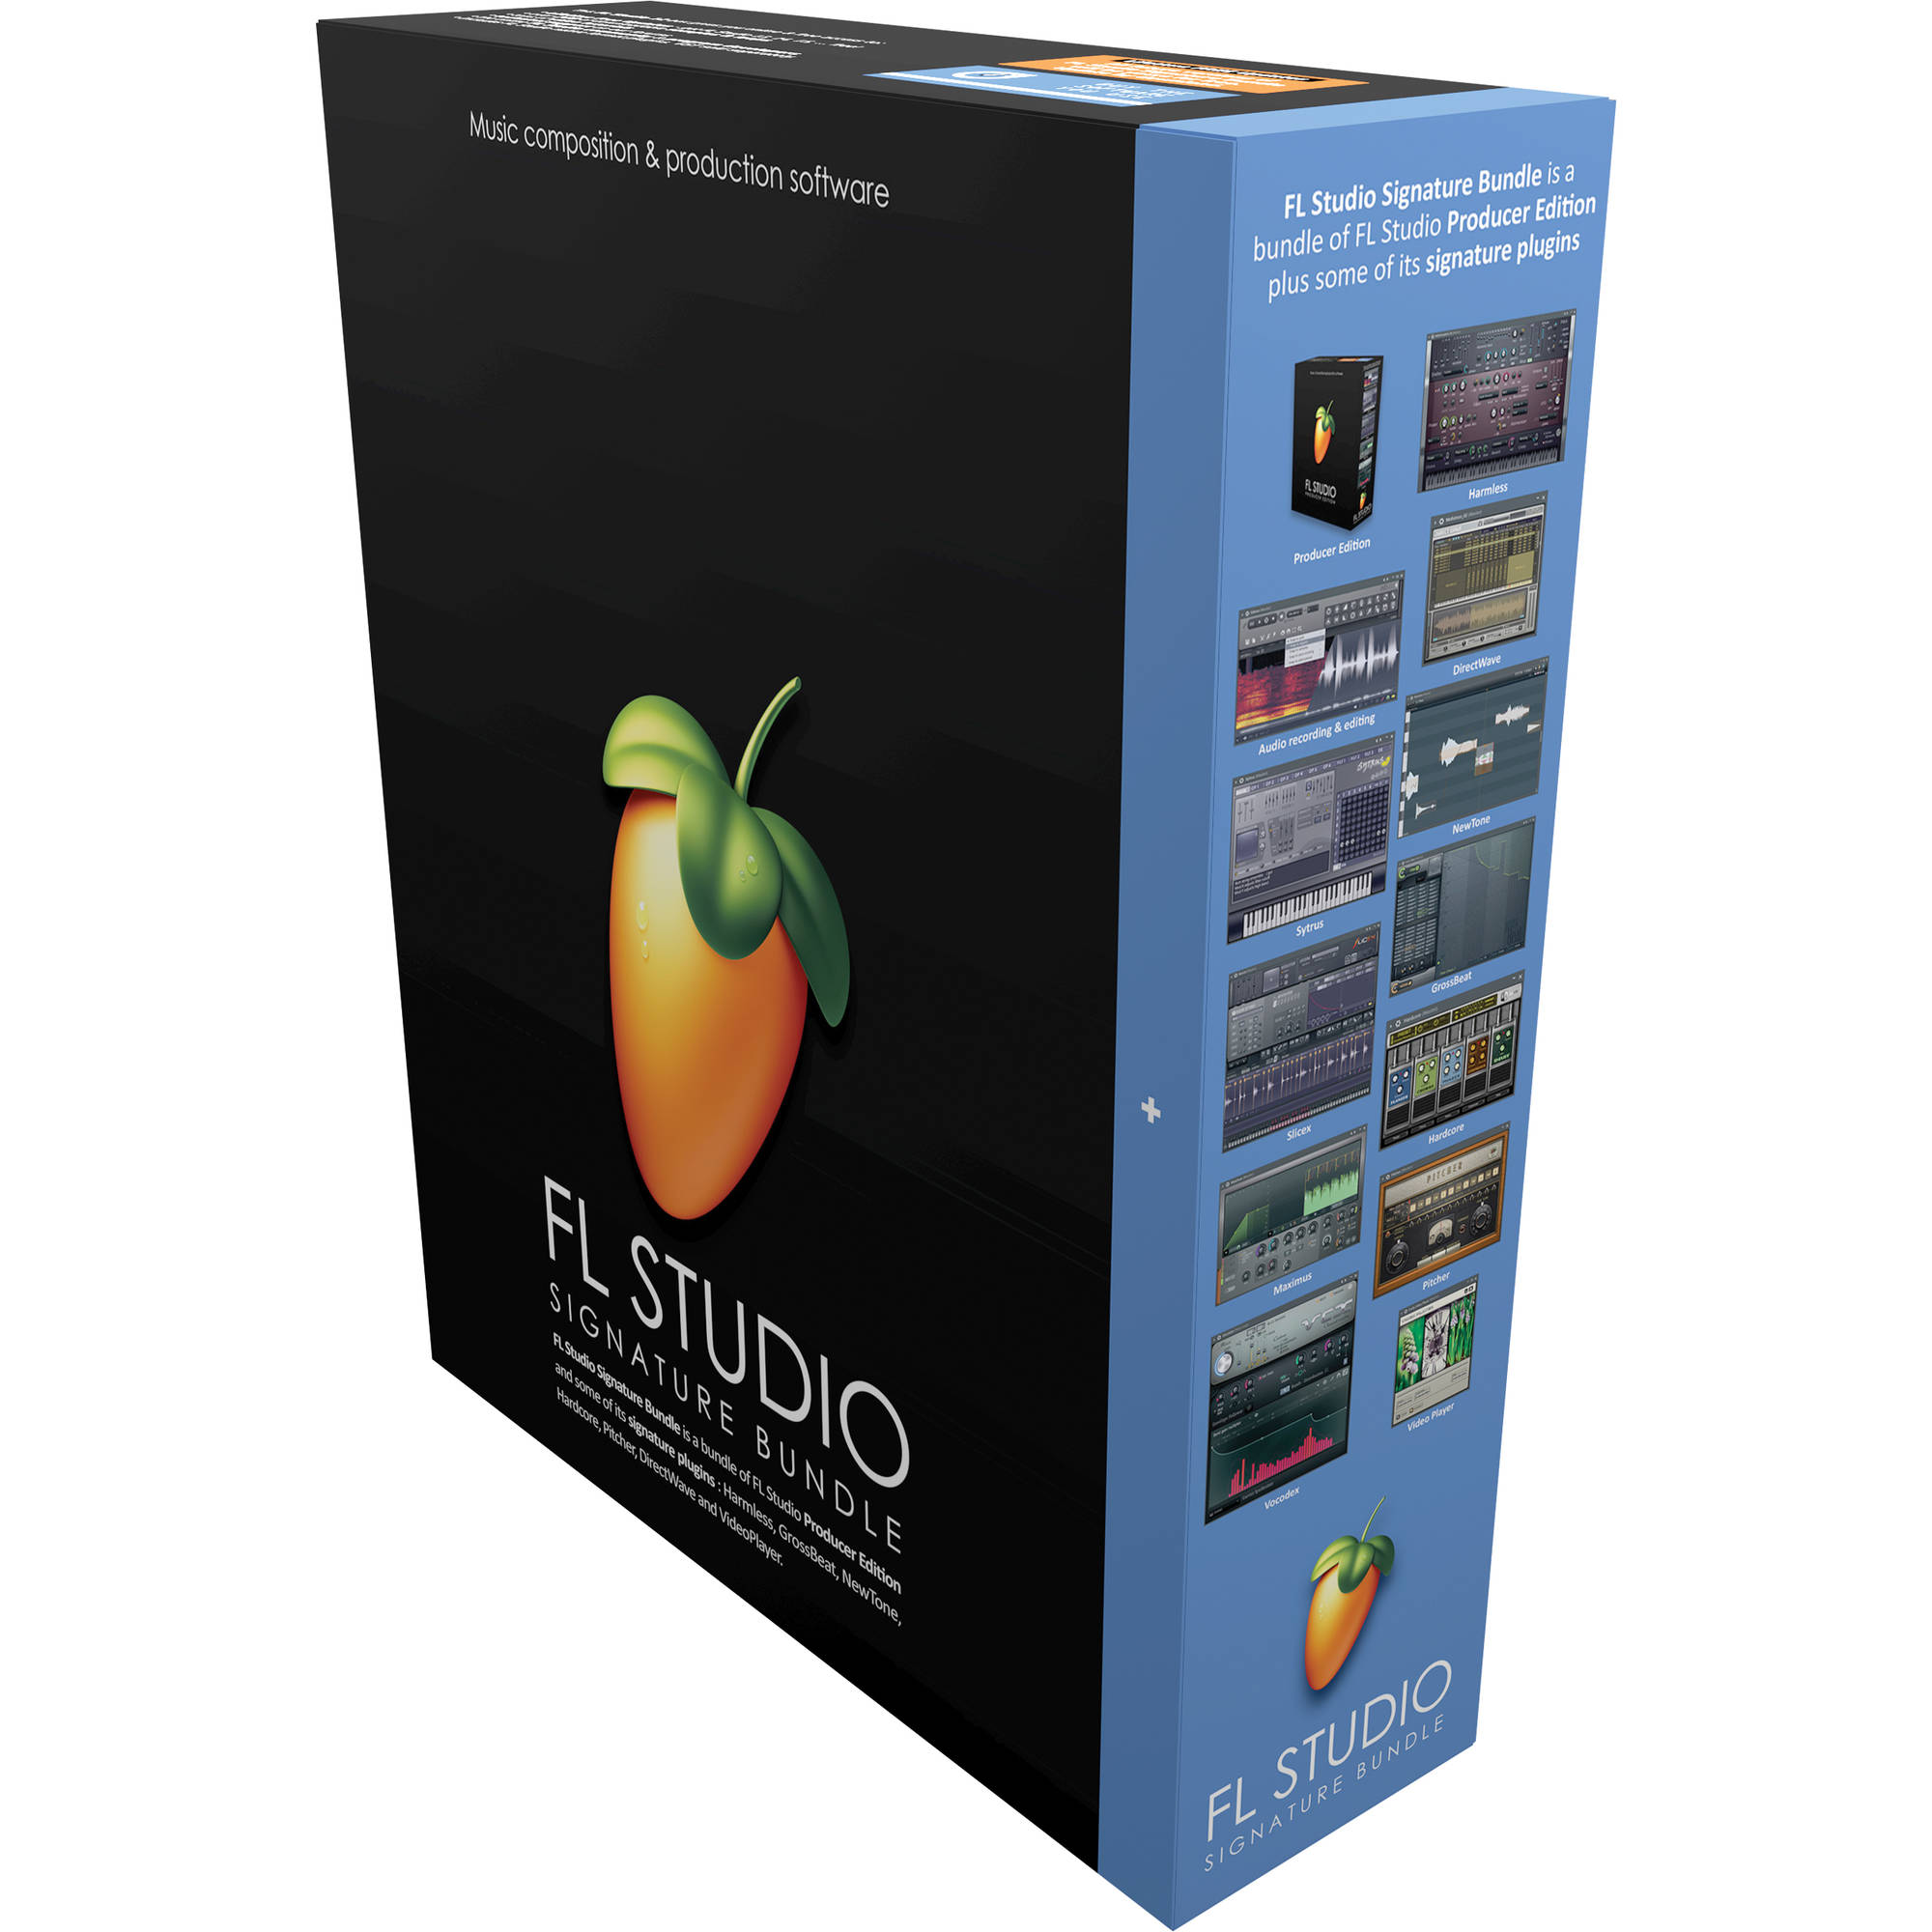 Image-Line FL Studio 12 Signature Edition - Complete Music Production  Software (Boxed)